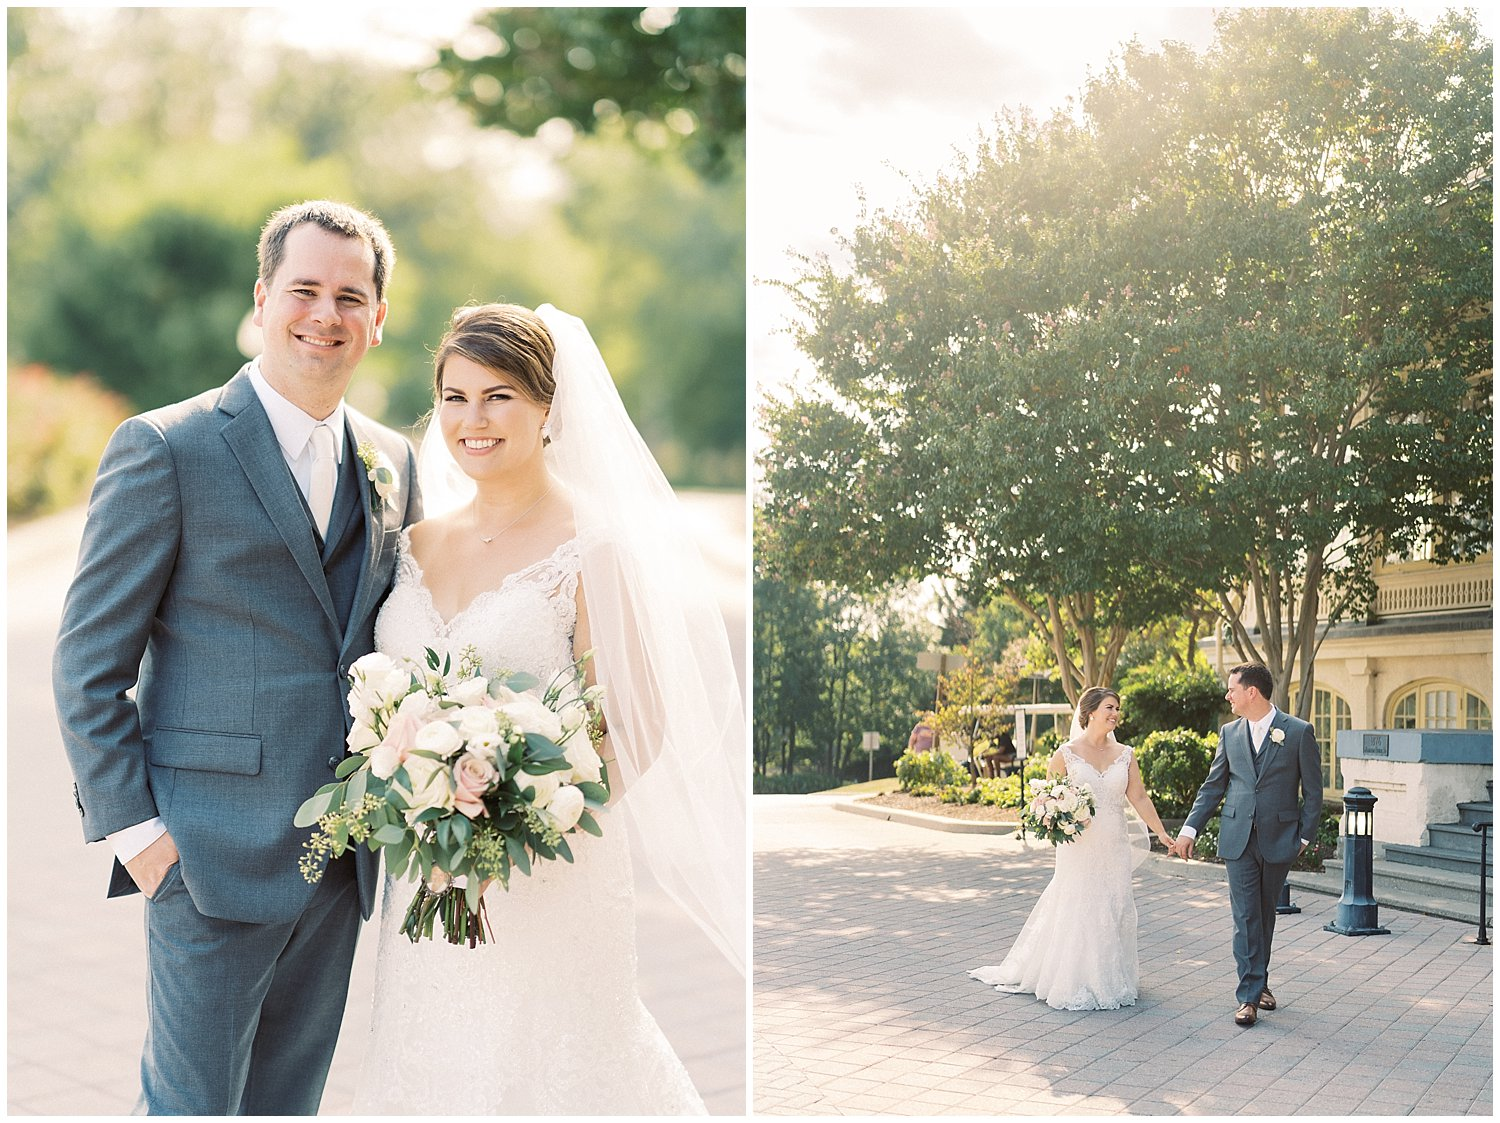 Maryland Zoo in Baltimore wedding photographer